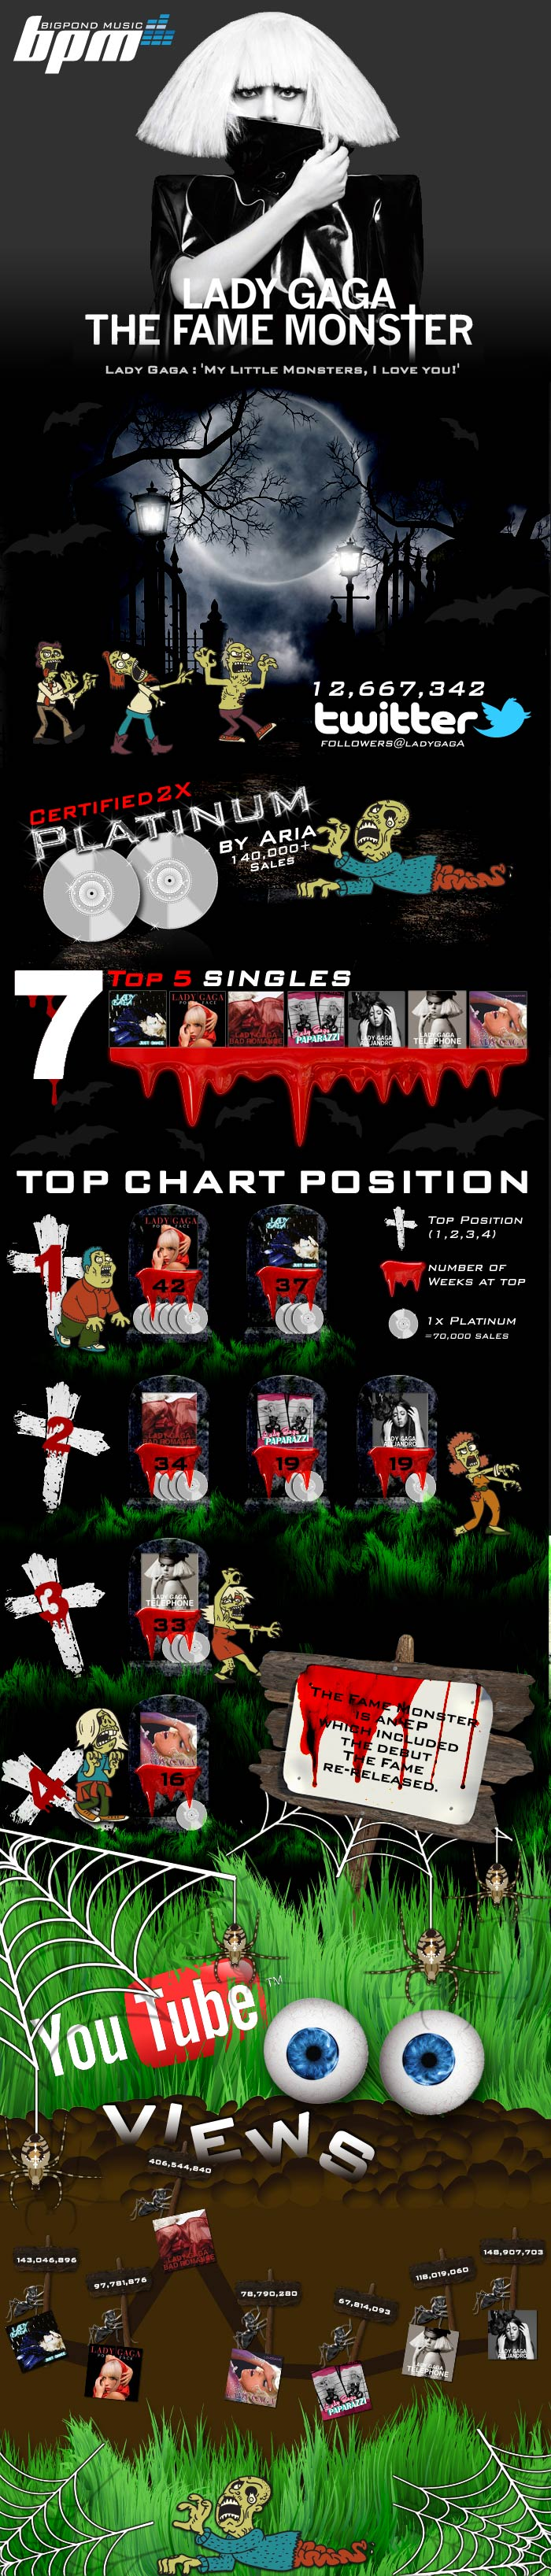 Lady Gaga The Fame Monster Halloween Top Charts